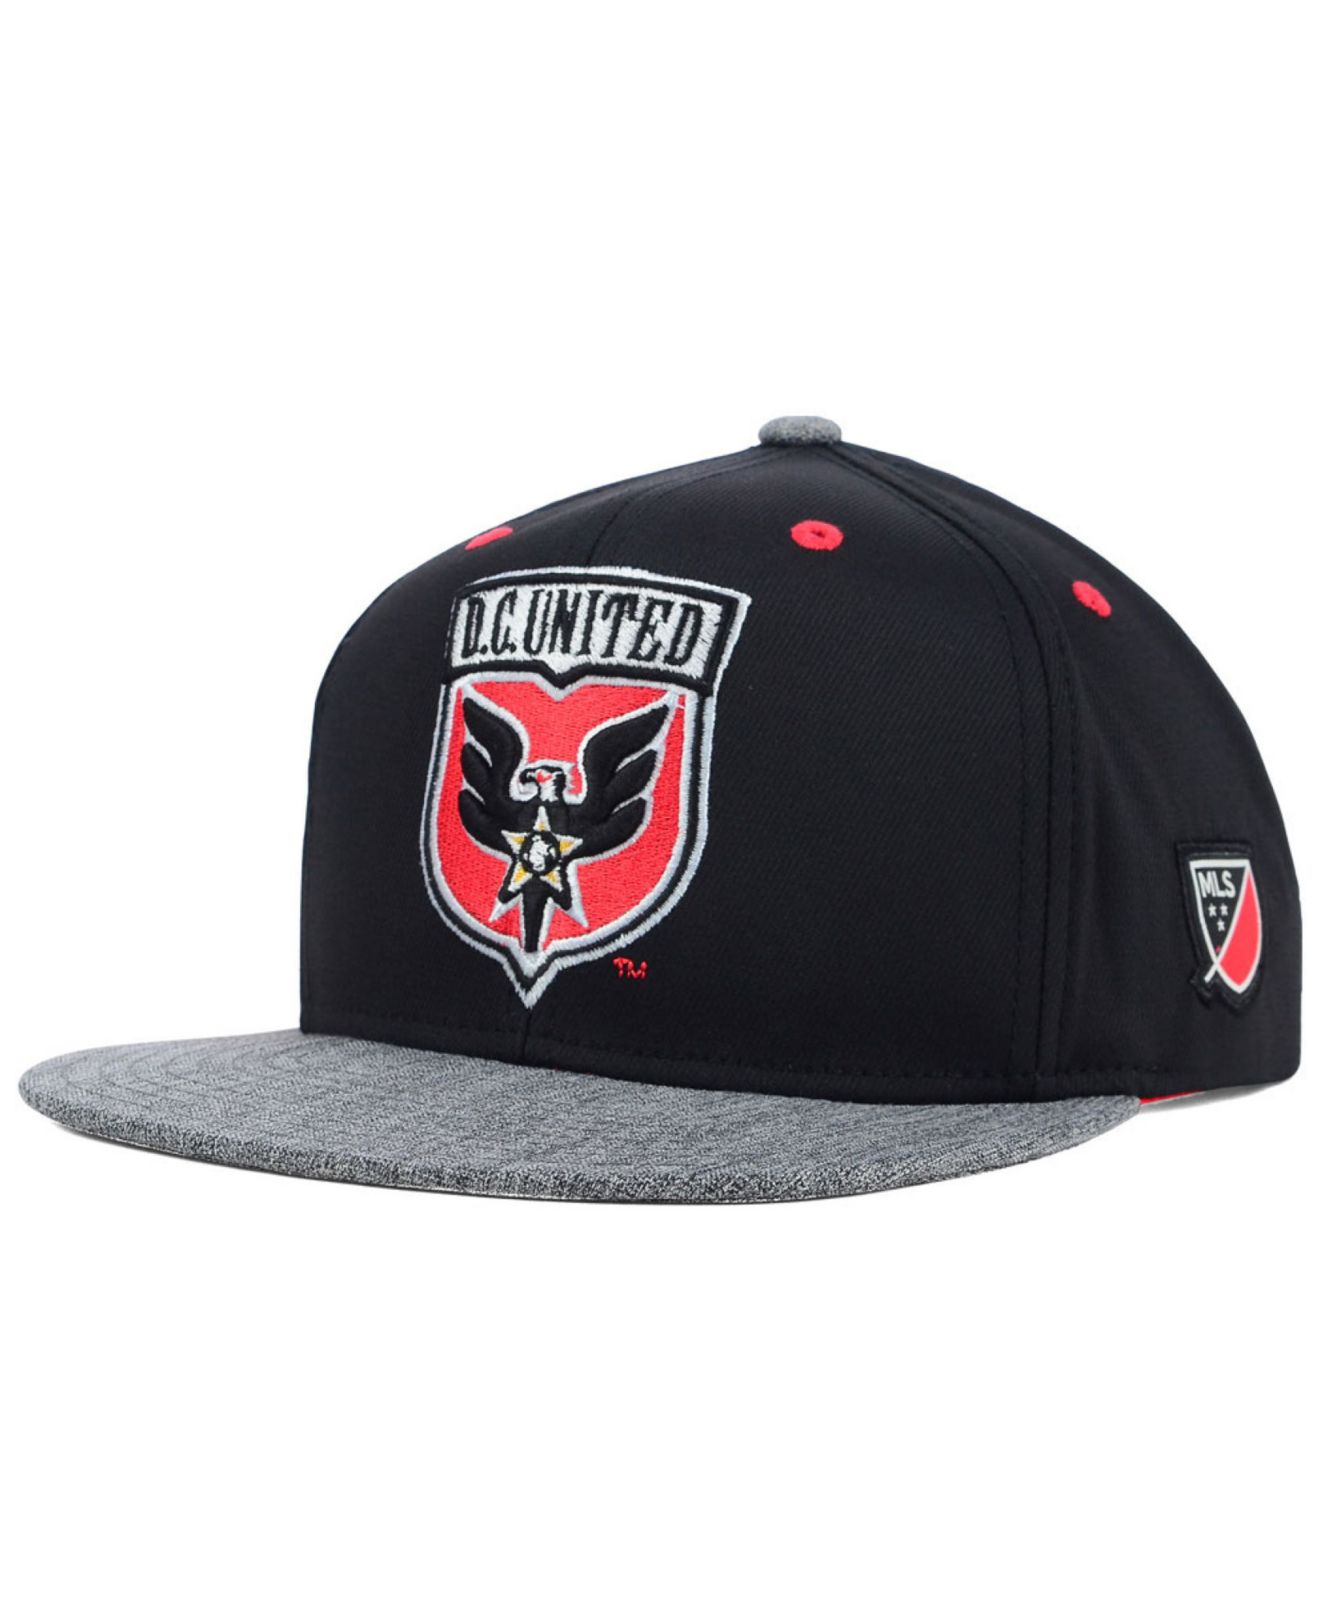 newest 18b47 7d5fe ... inexpensive lyst adidas dc united team snapback cap in black for men  fd2c8 f6793